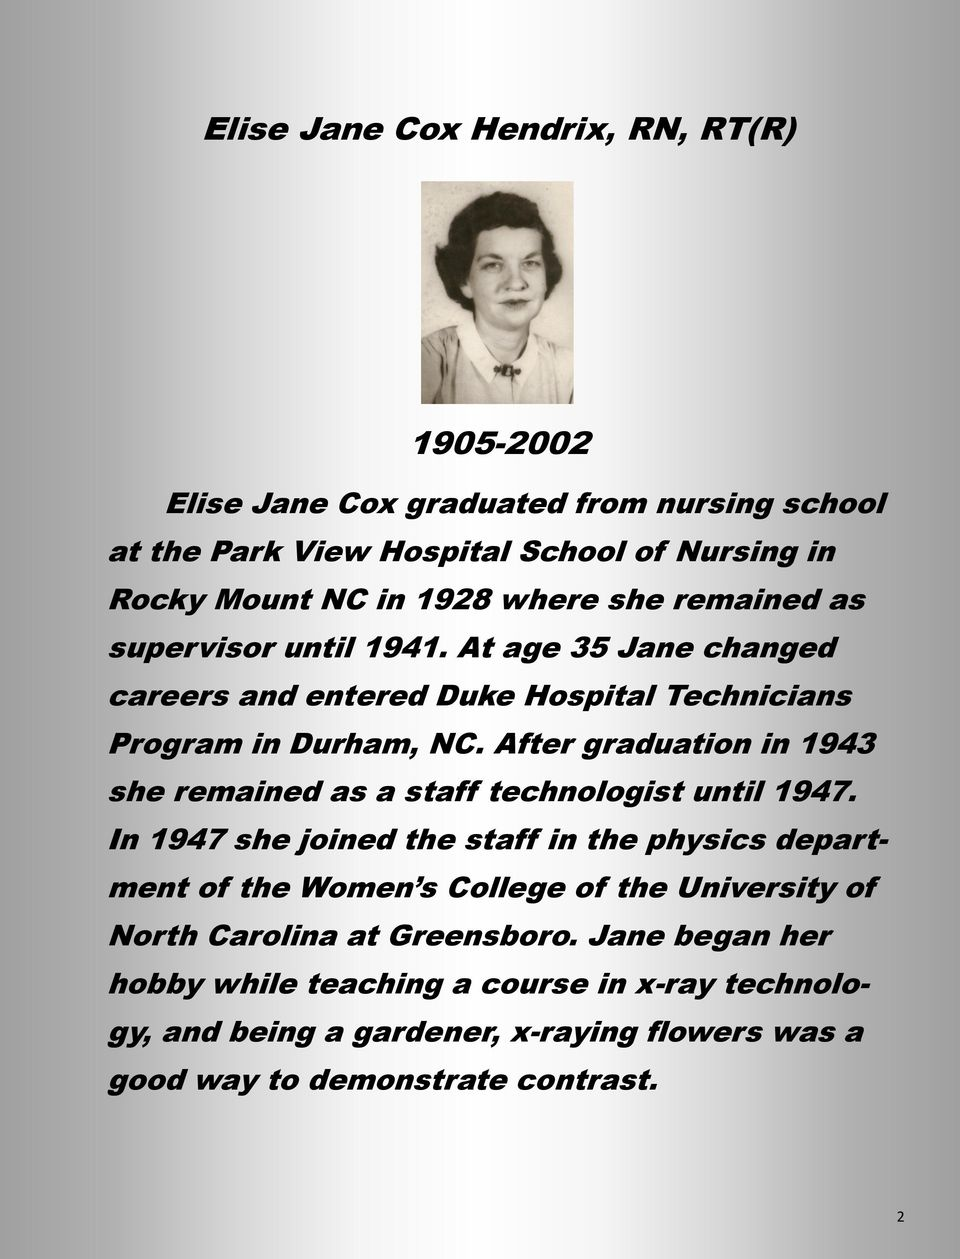 After graduation in 1943 she remained as a staff technologist until 1947.